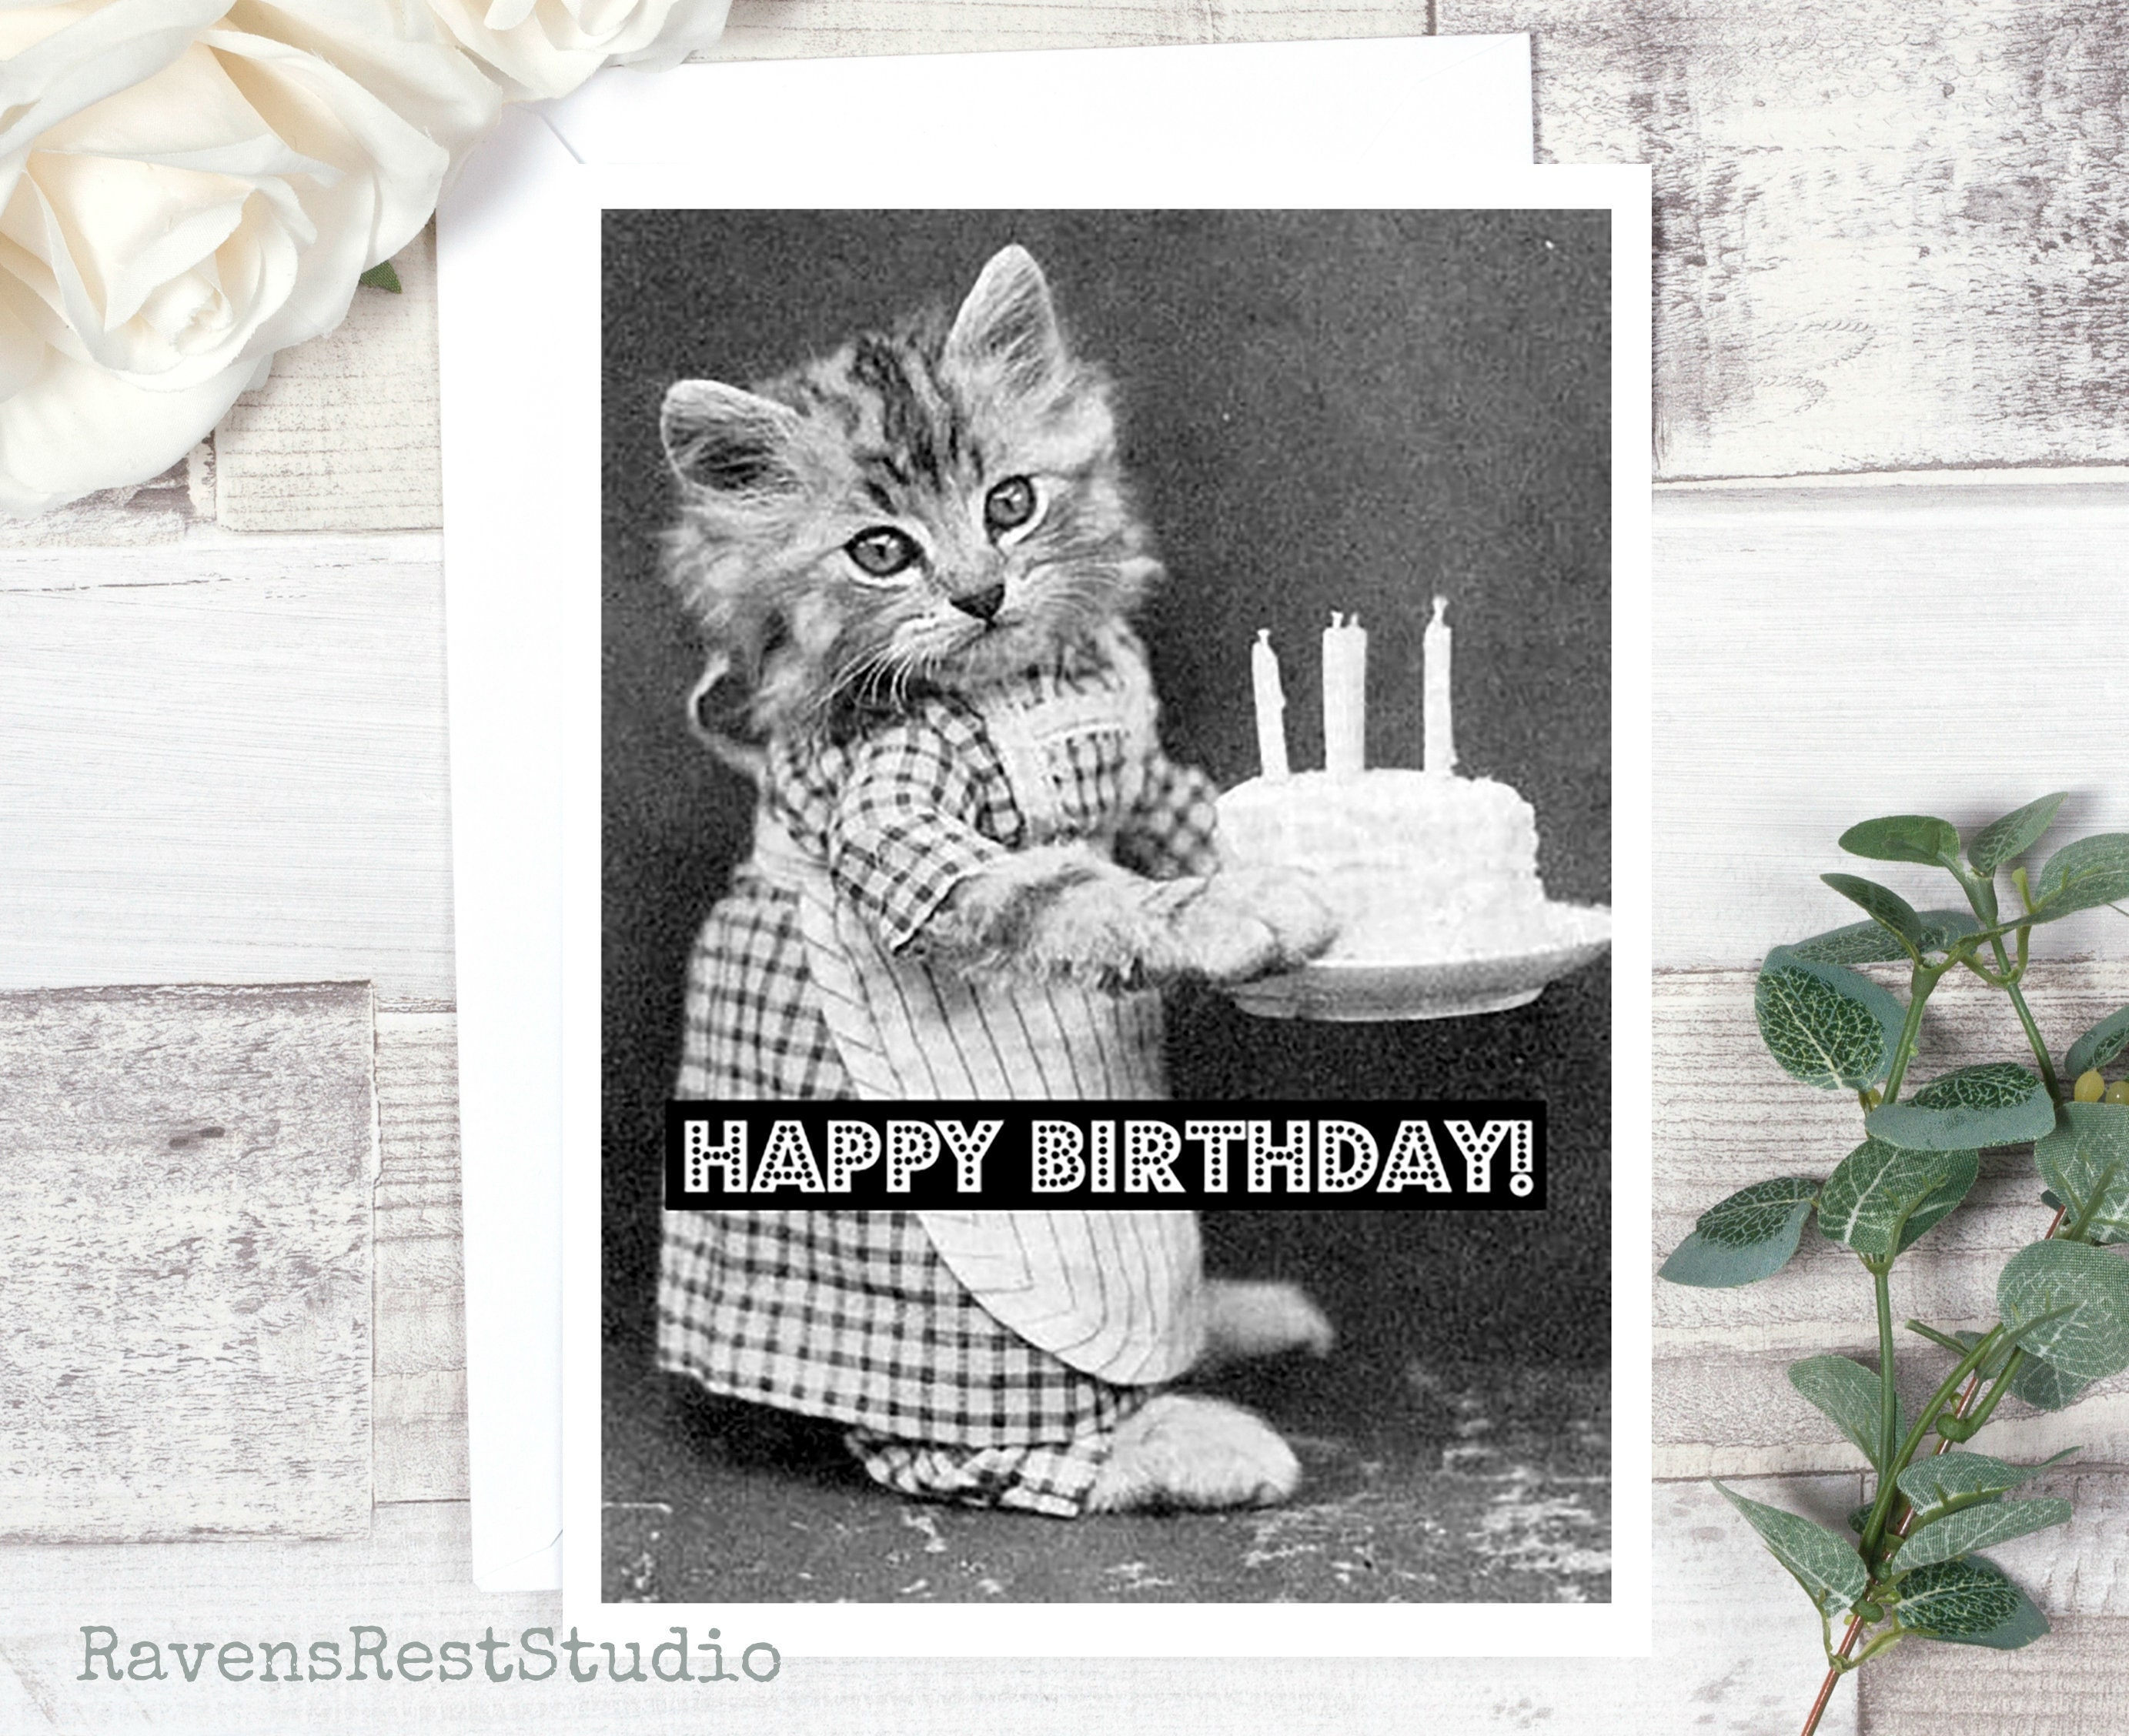 Birthday Card Vintage Photo Card Cat With Birthday Cake Greeting